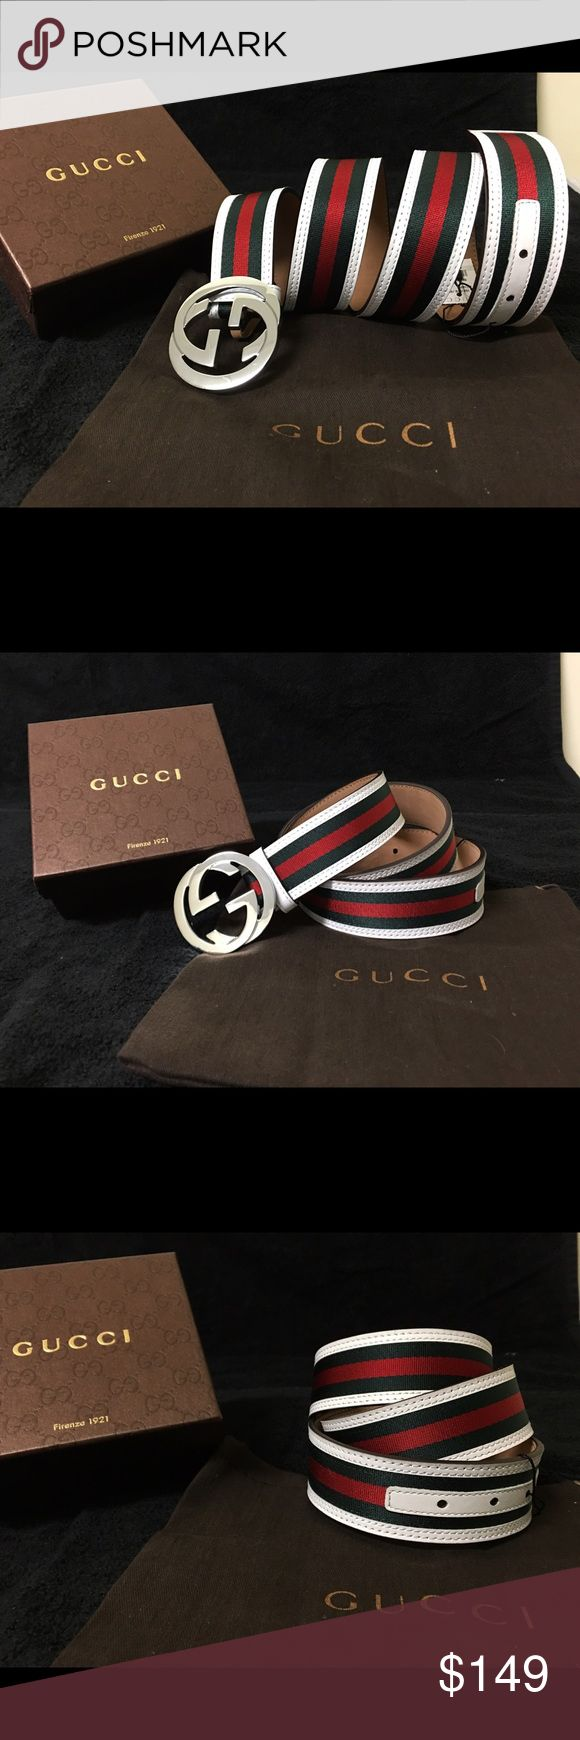 Gucci Men Belt White Green Red Stripes Sz Fits All Authentic Men's White Green Red Belt Stripes Sizes for all NWT • US size in (parenthesis) next to Euro Size • 100% Authentic • Free PRIORITY 1-3 Day shipping • 1 Day handling Gucci Accessories Belts